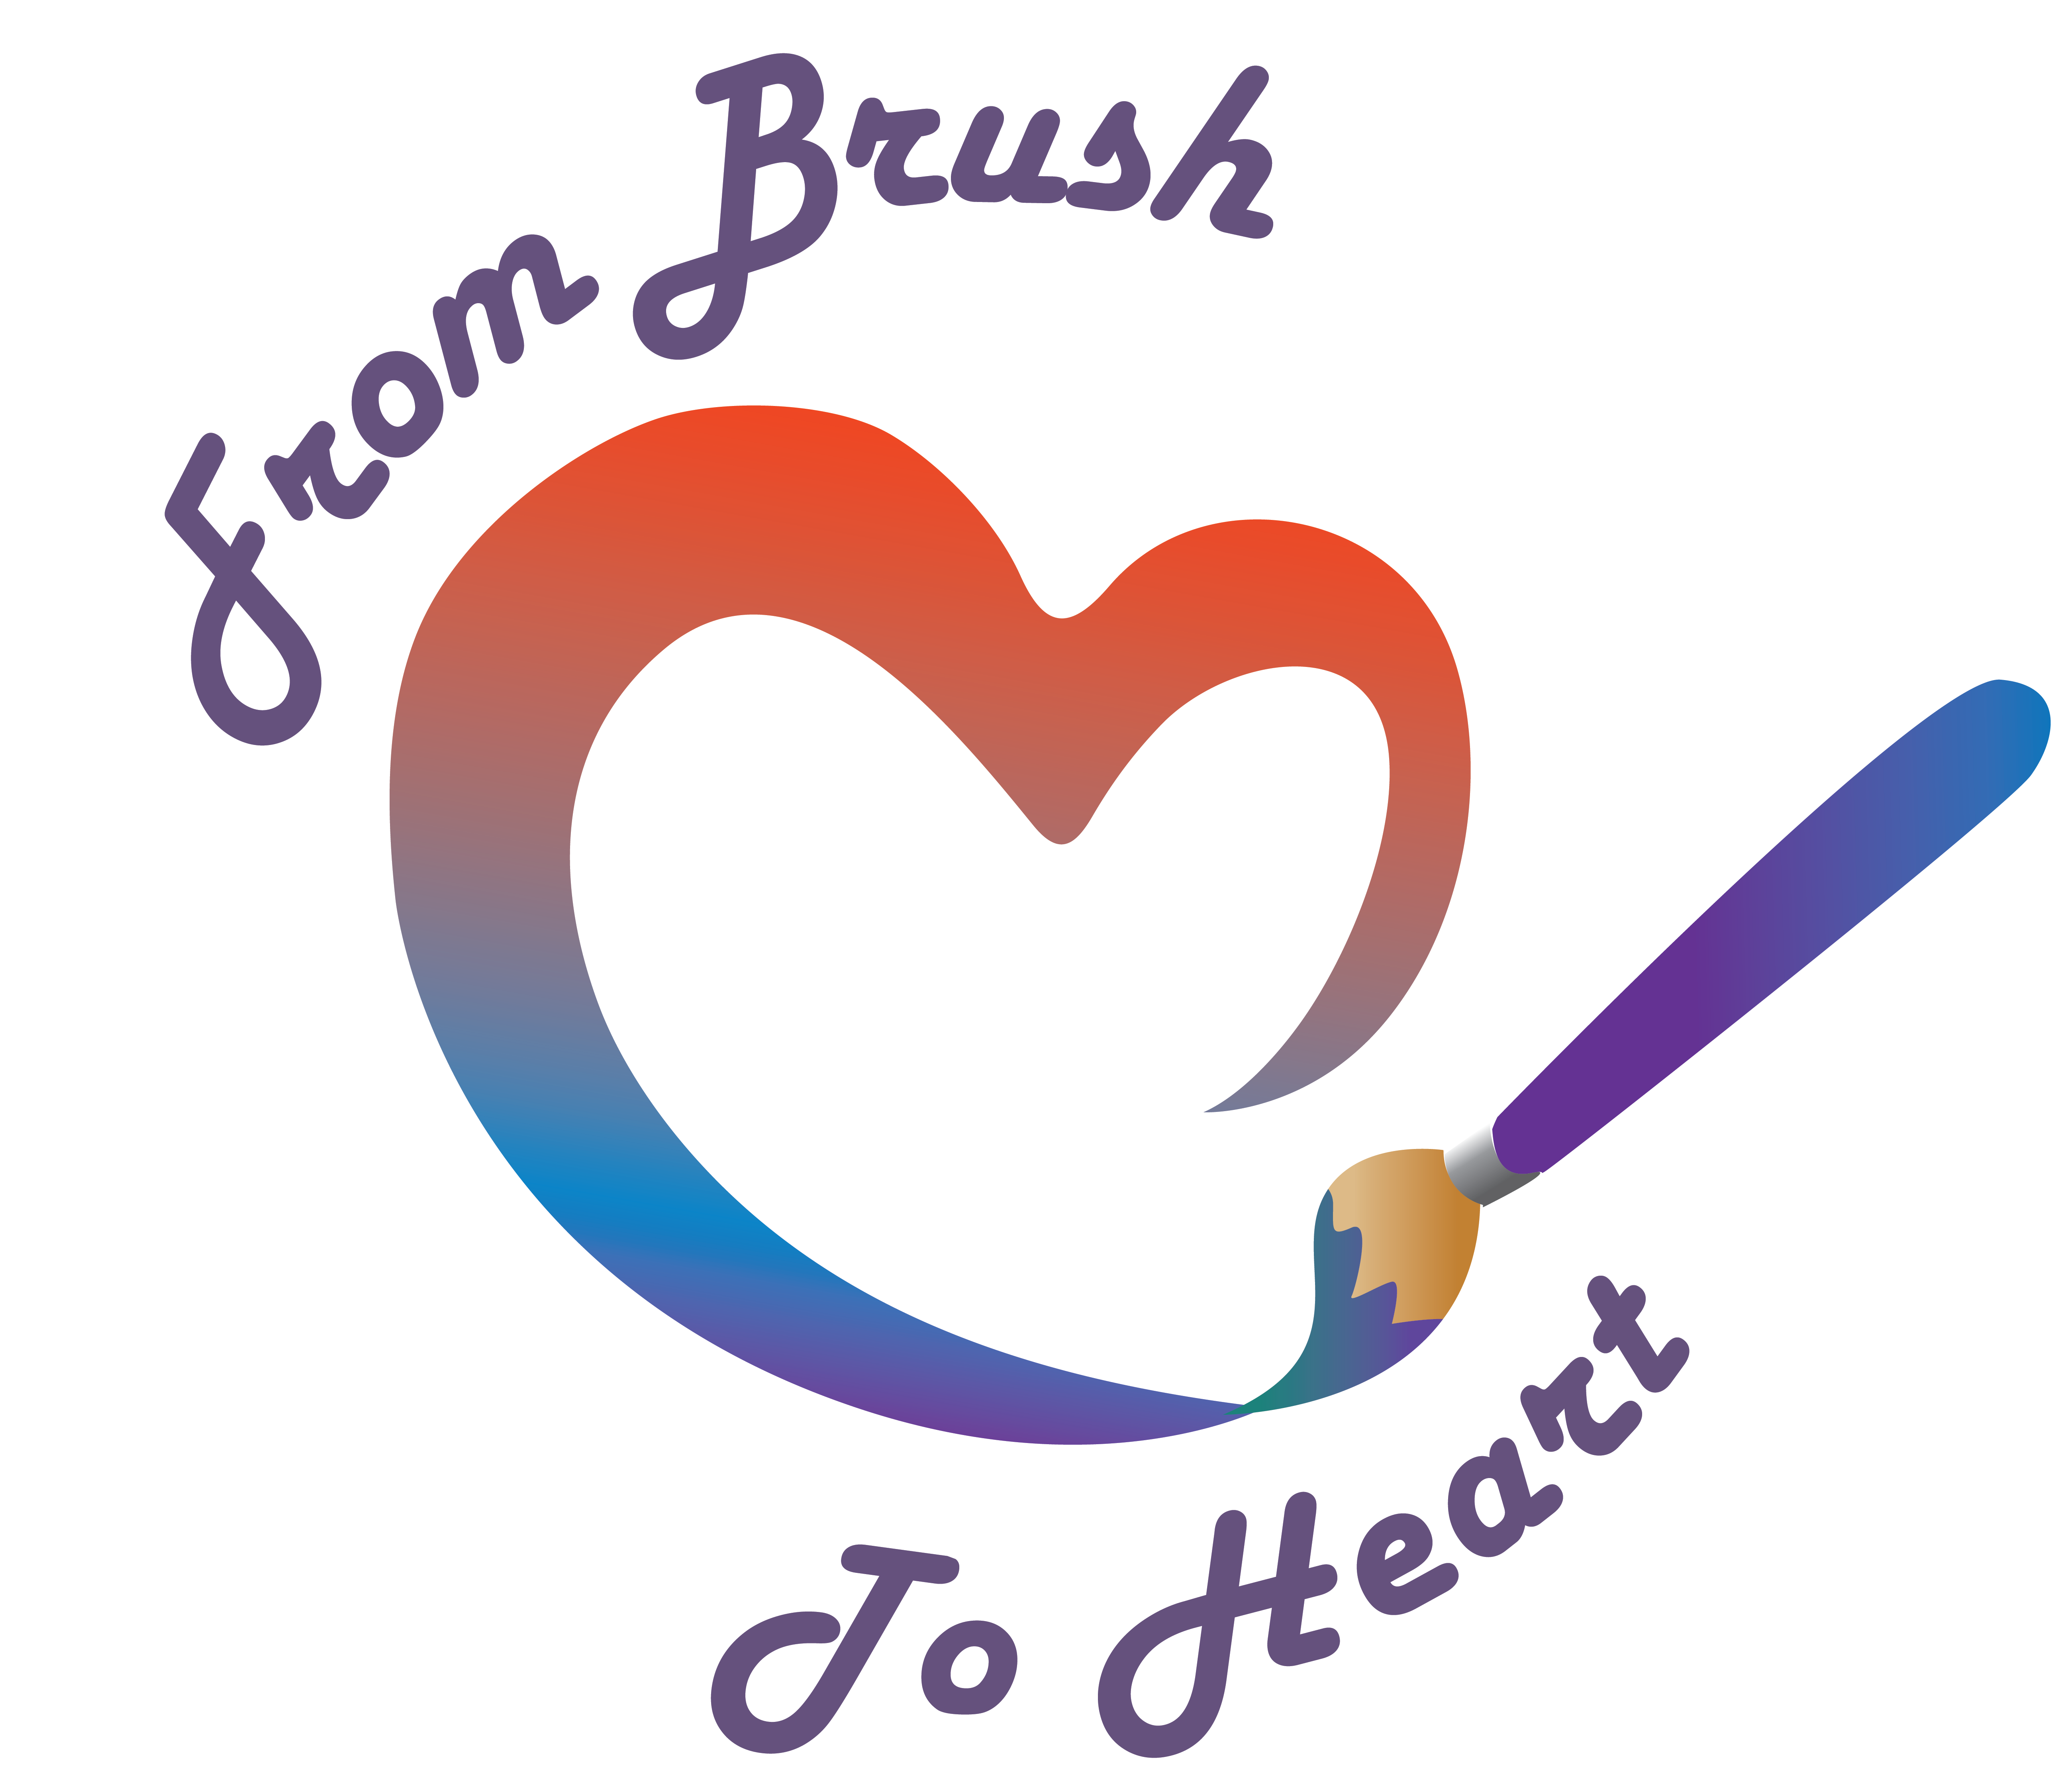 From Brush to Heart Inc.